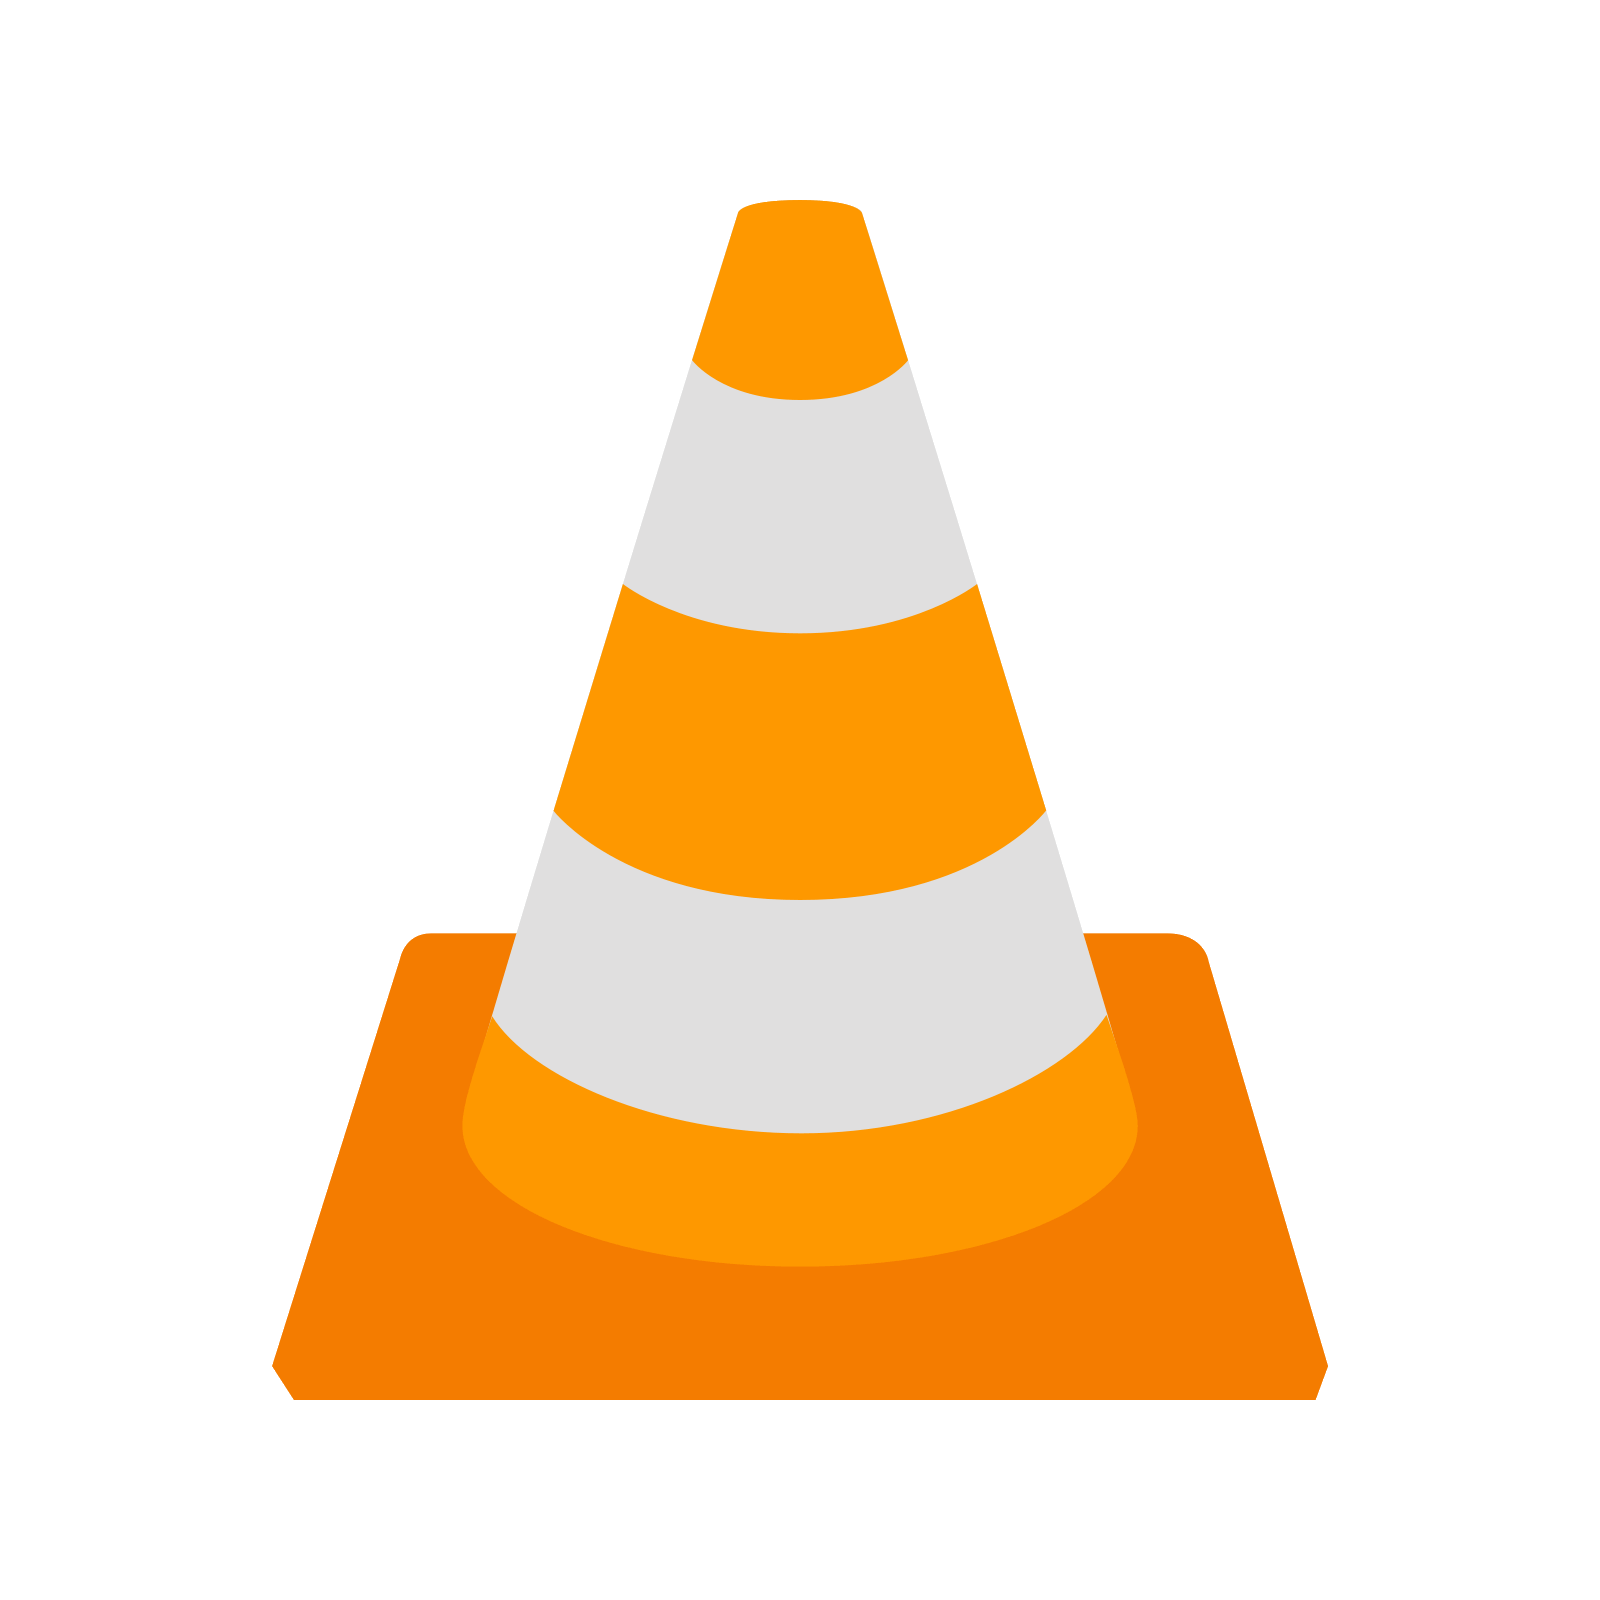 Transparent cone vlc. Media player computer icons